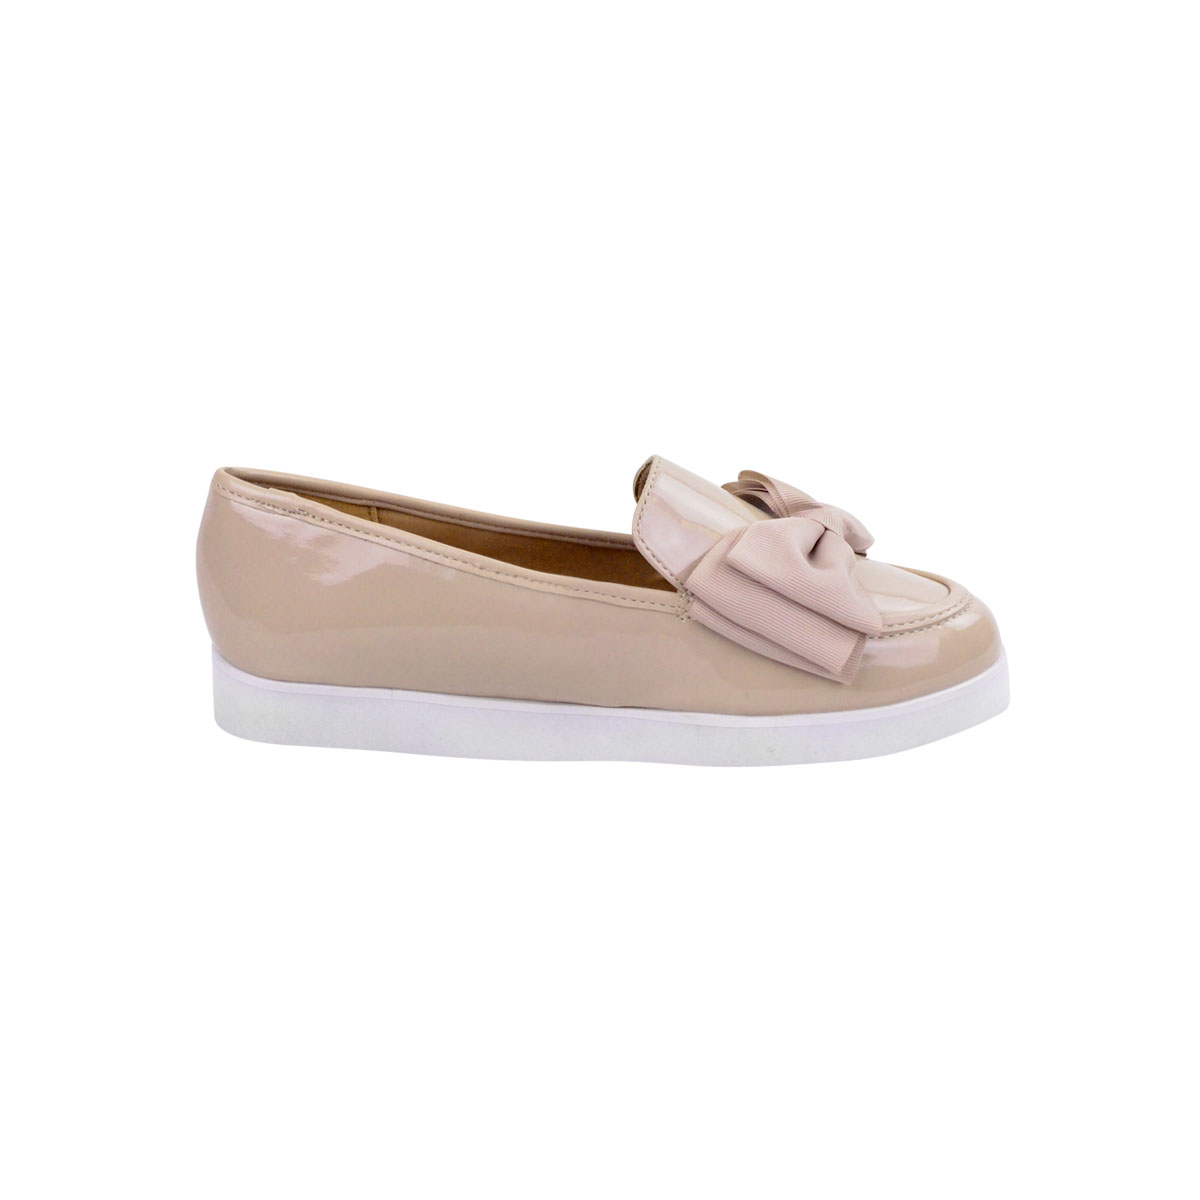 WOMENS-LADIES-GIRLS-NEW-FLAT-OFFICE-SCHOOL-SHOES-SMART-FORMAL-LOAFERS-PUMPS-SIZE thumbnail 8